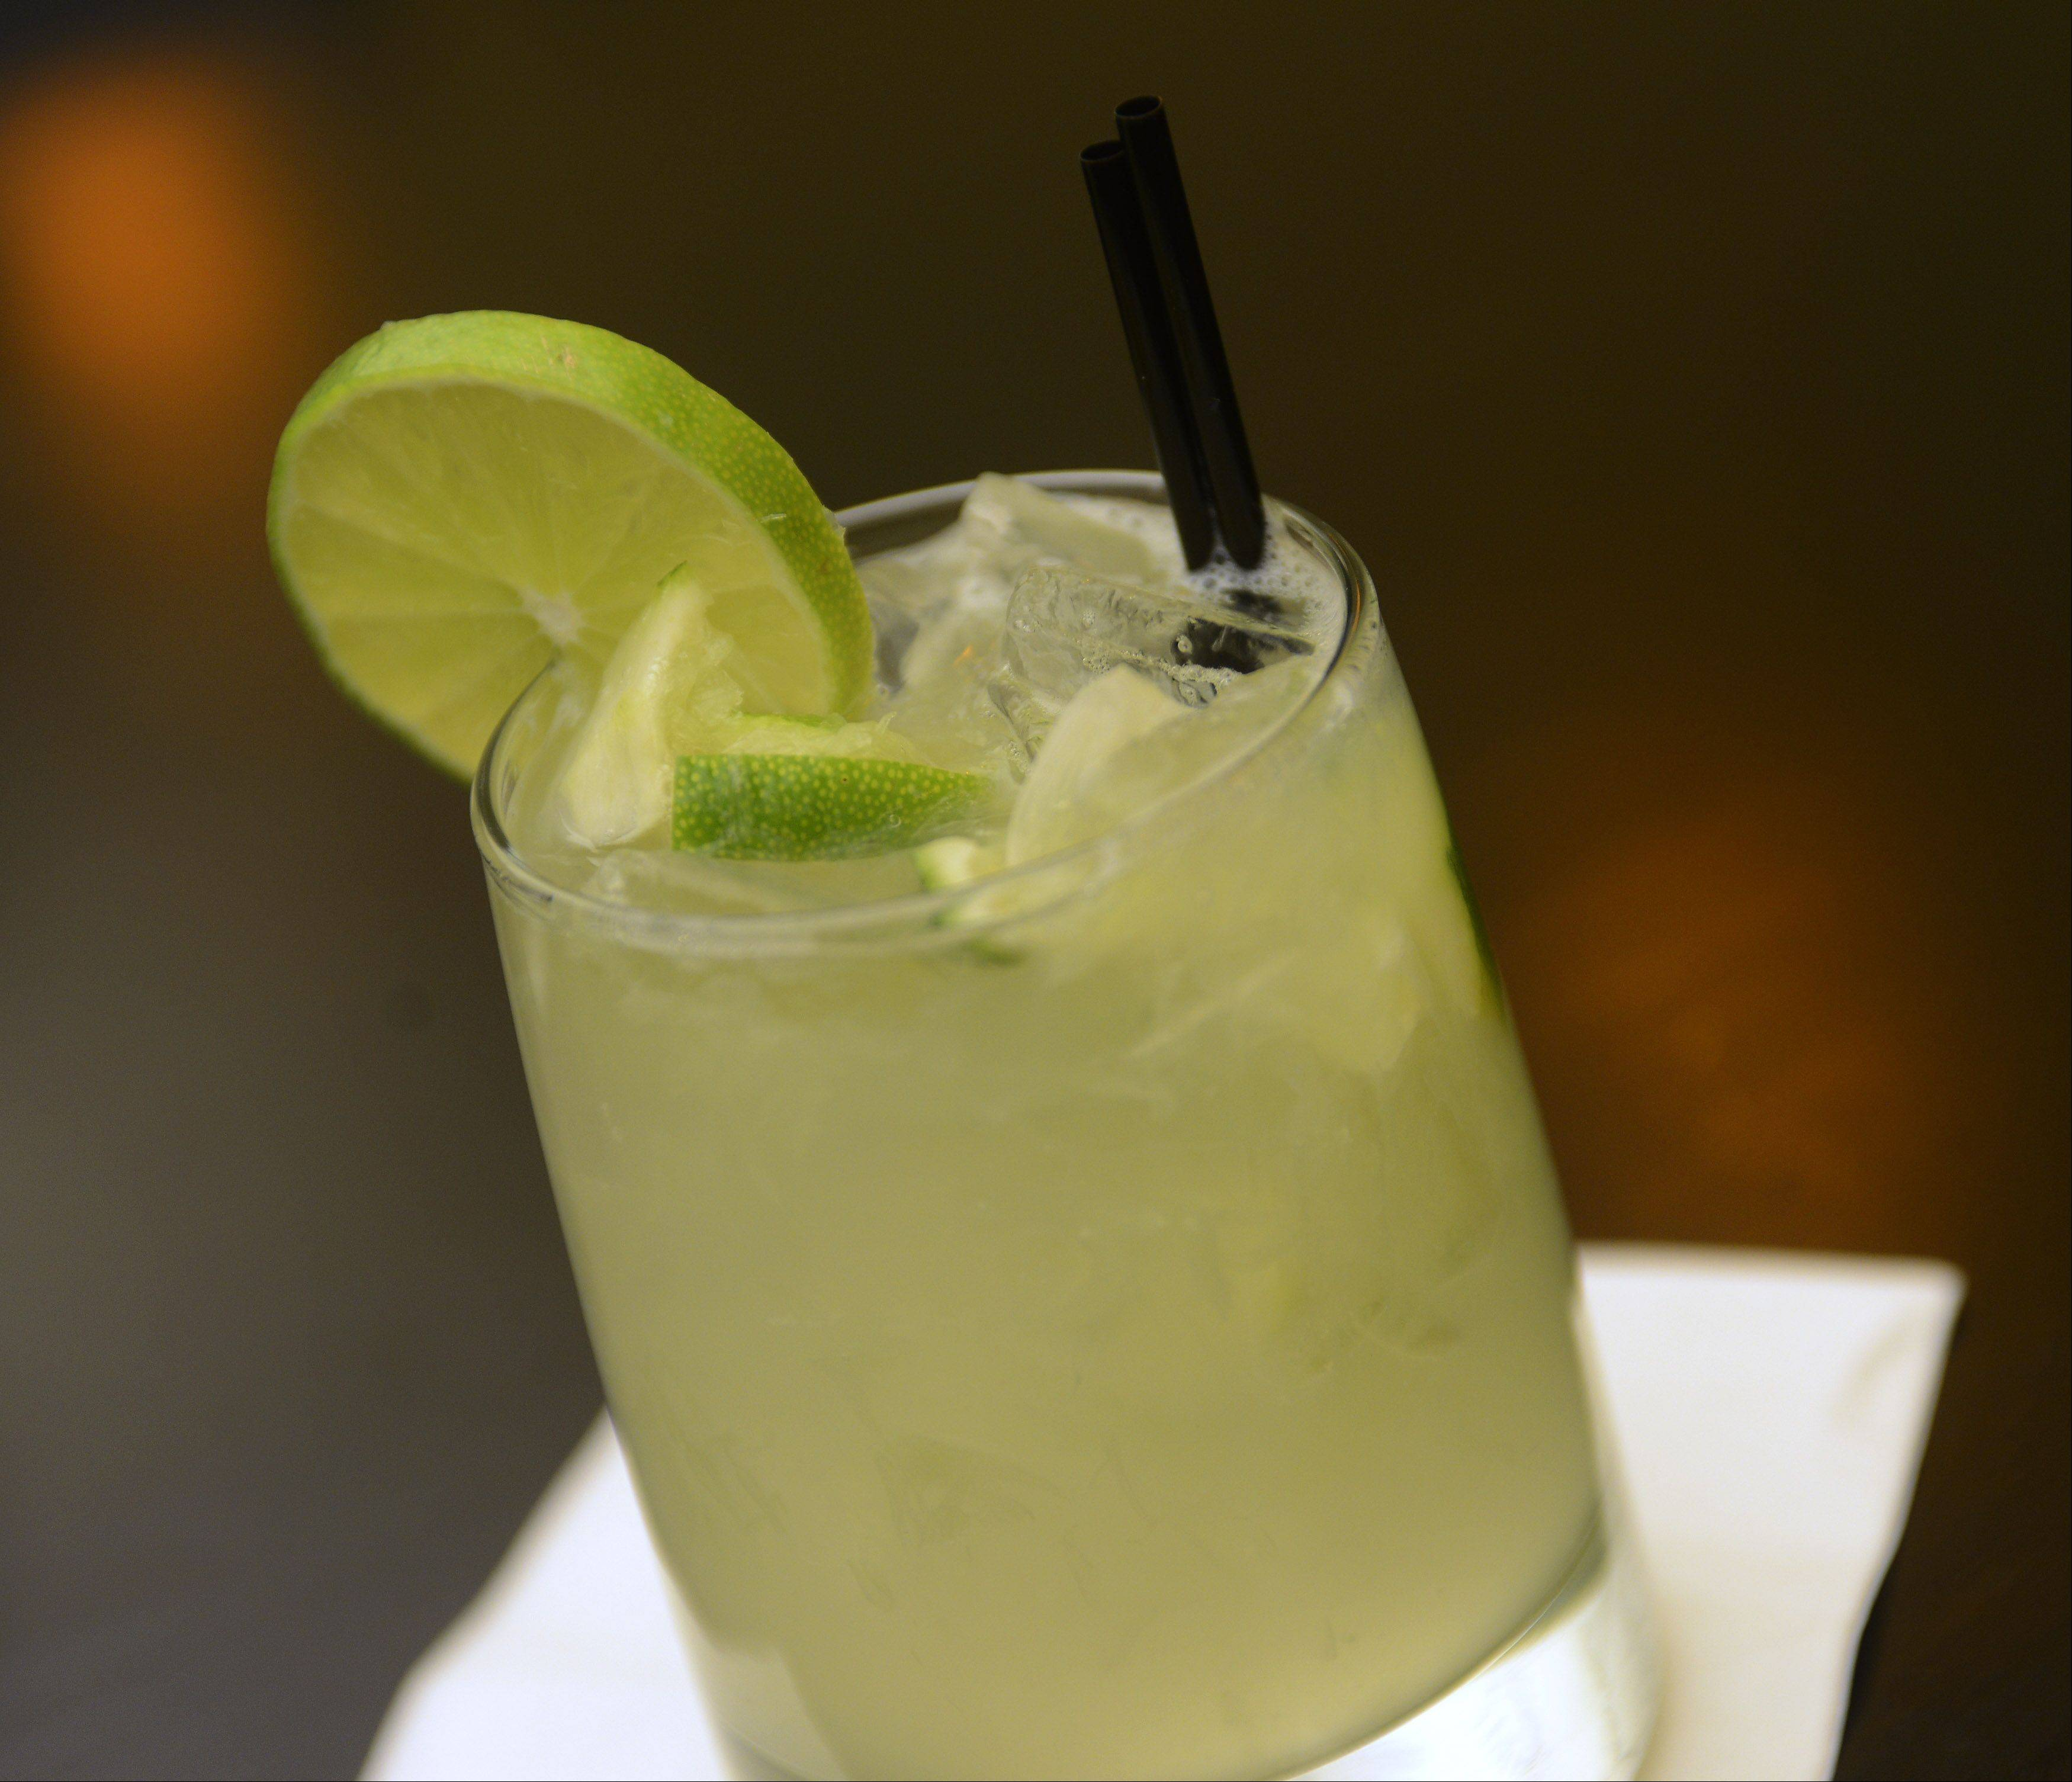 Caipirinha, a traditional Brazilian cocktail, is just one cocktail option at Brazil Express in Schaumburg.